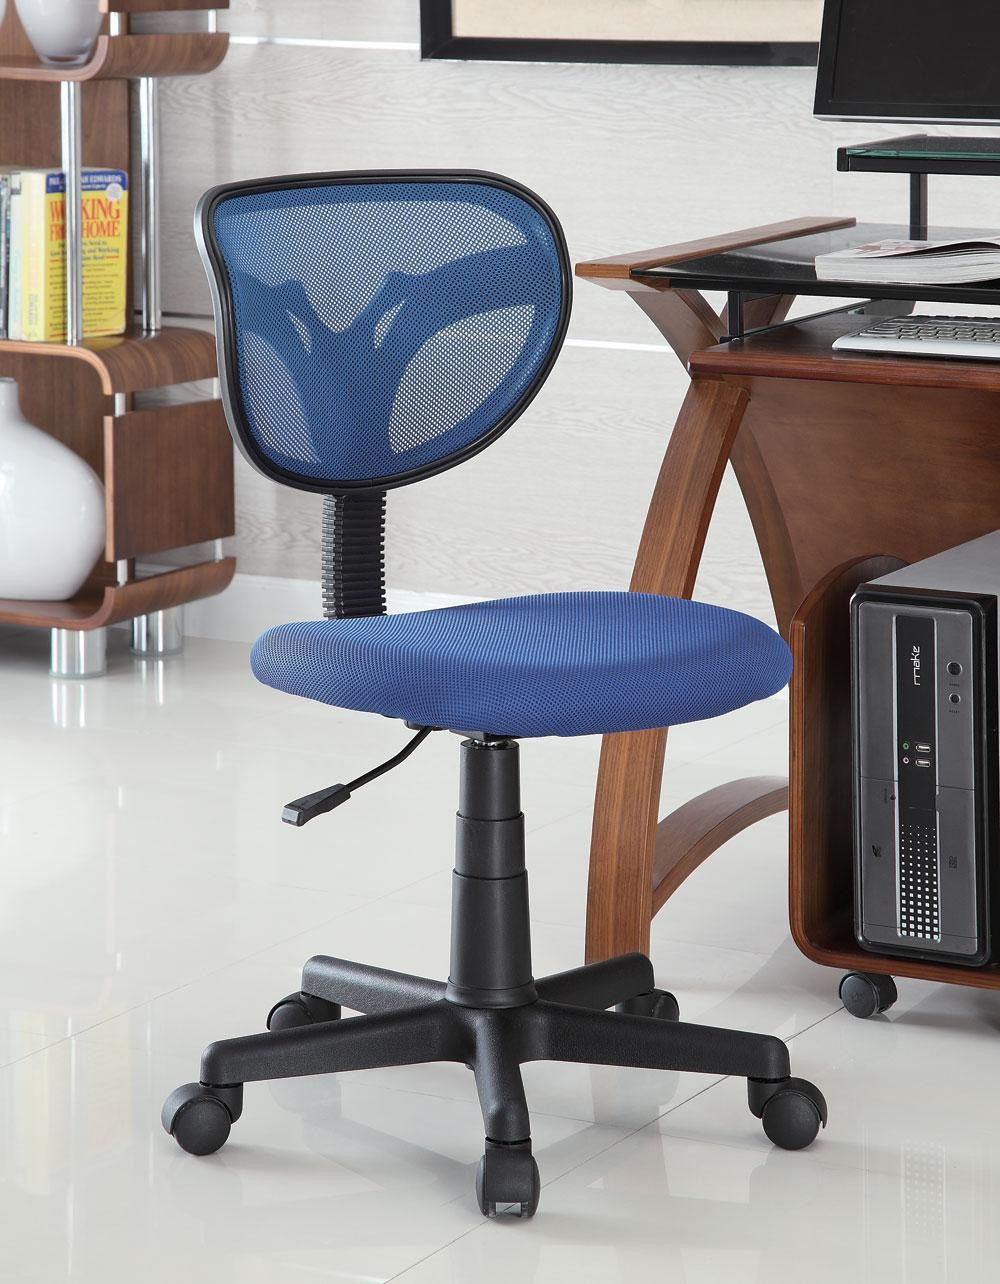 Blue mesh office chair 800055b from coaster 800055b for Blue office chair